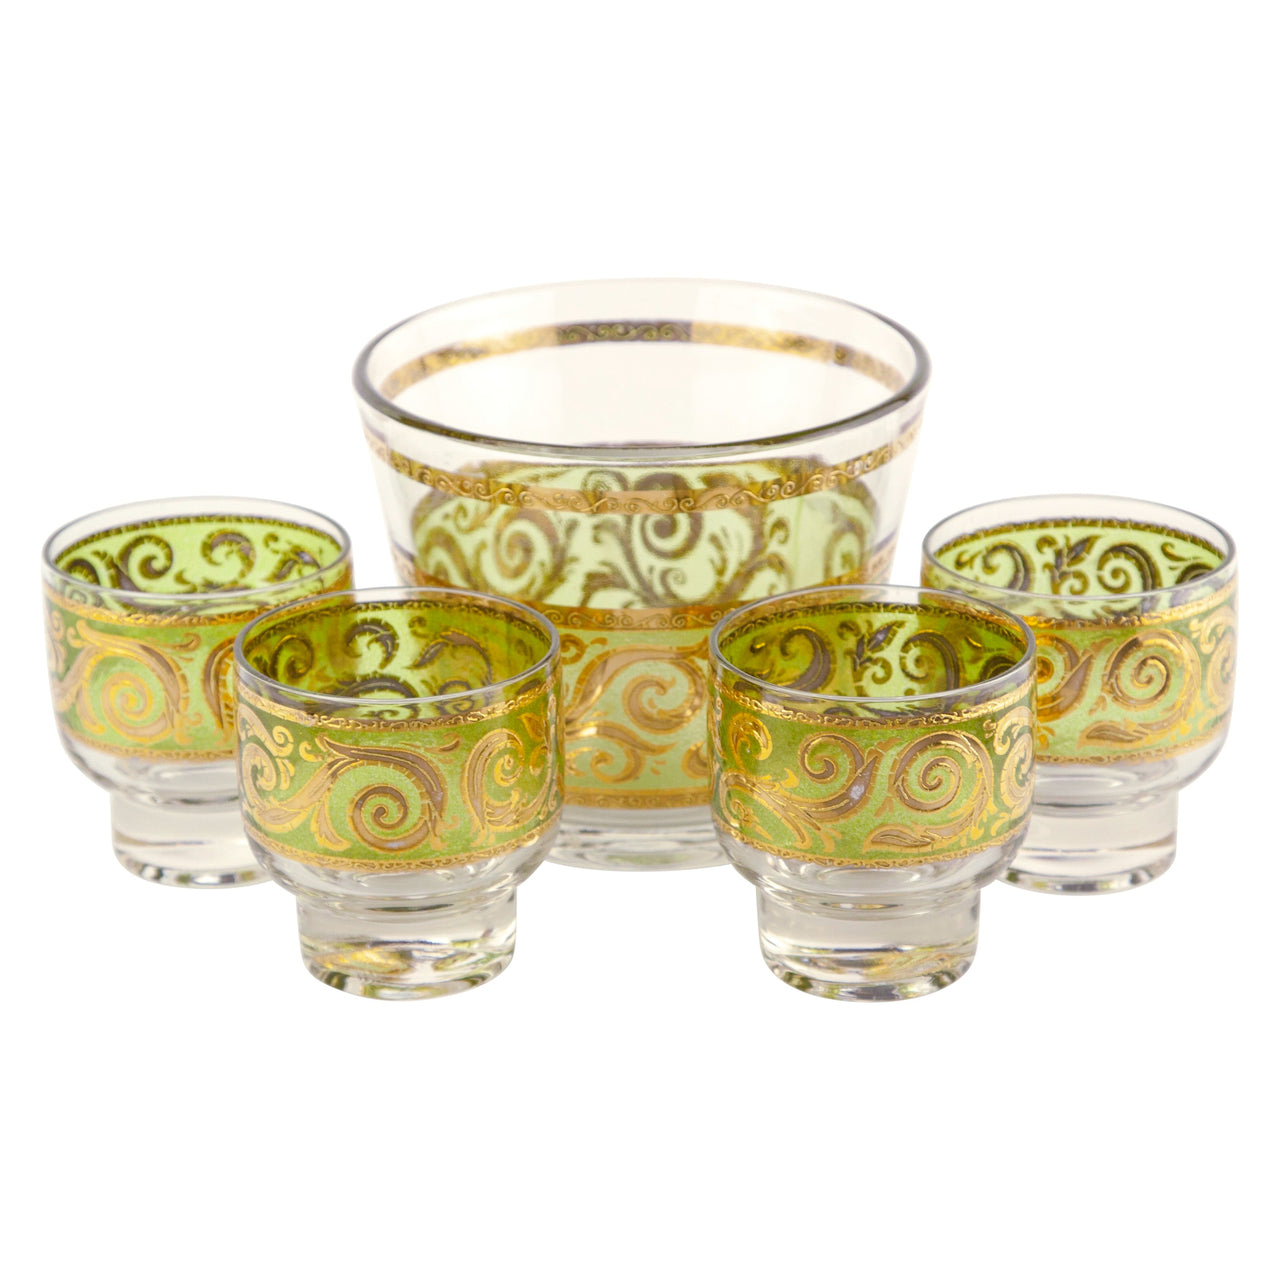 Culver Green & Gold Ice Bucket Set | The Hour Shop Vintage